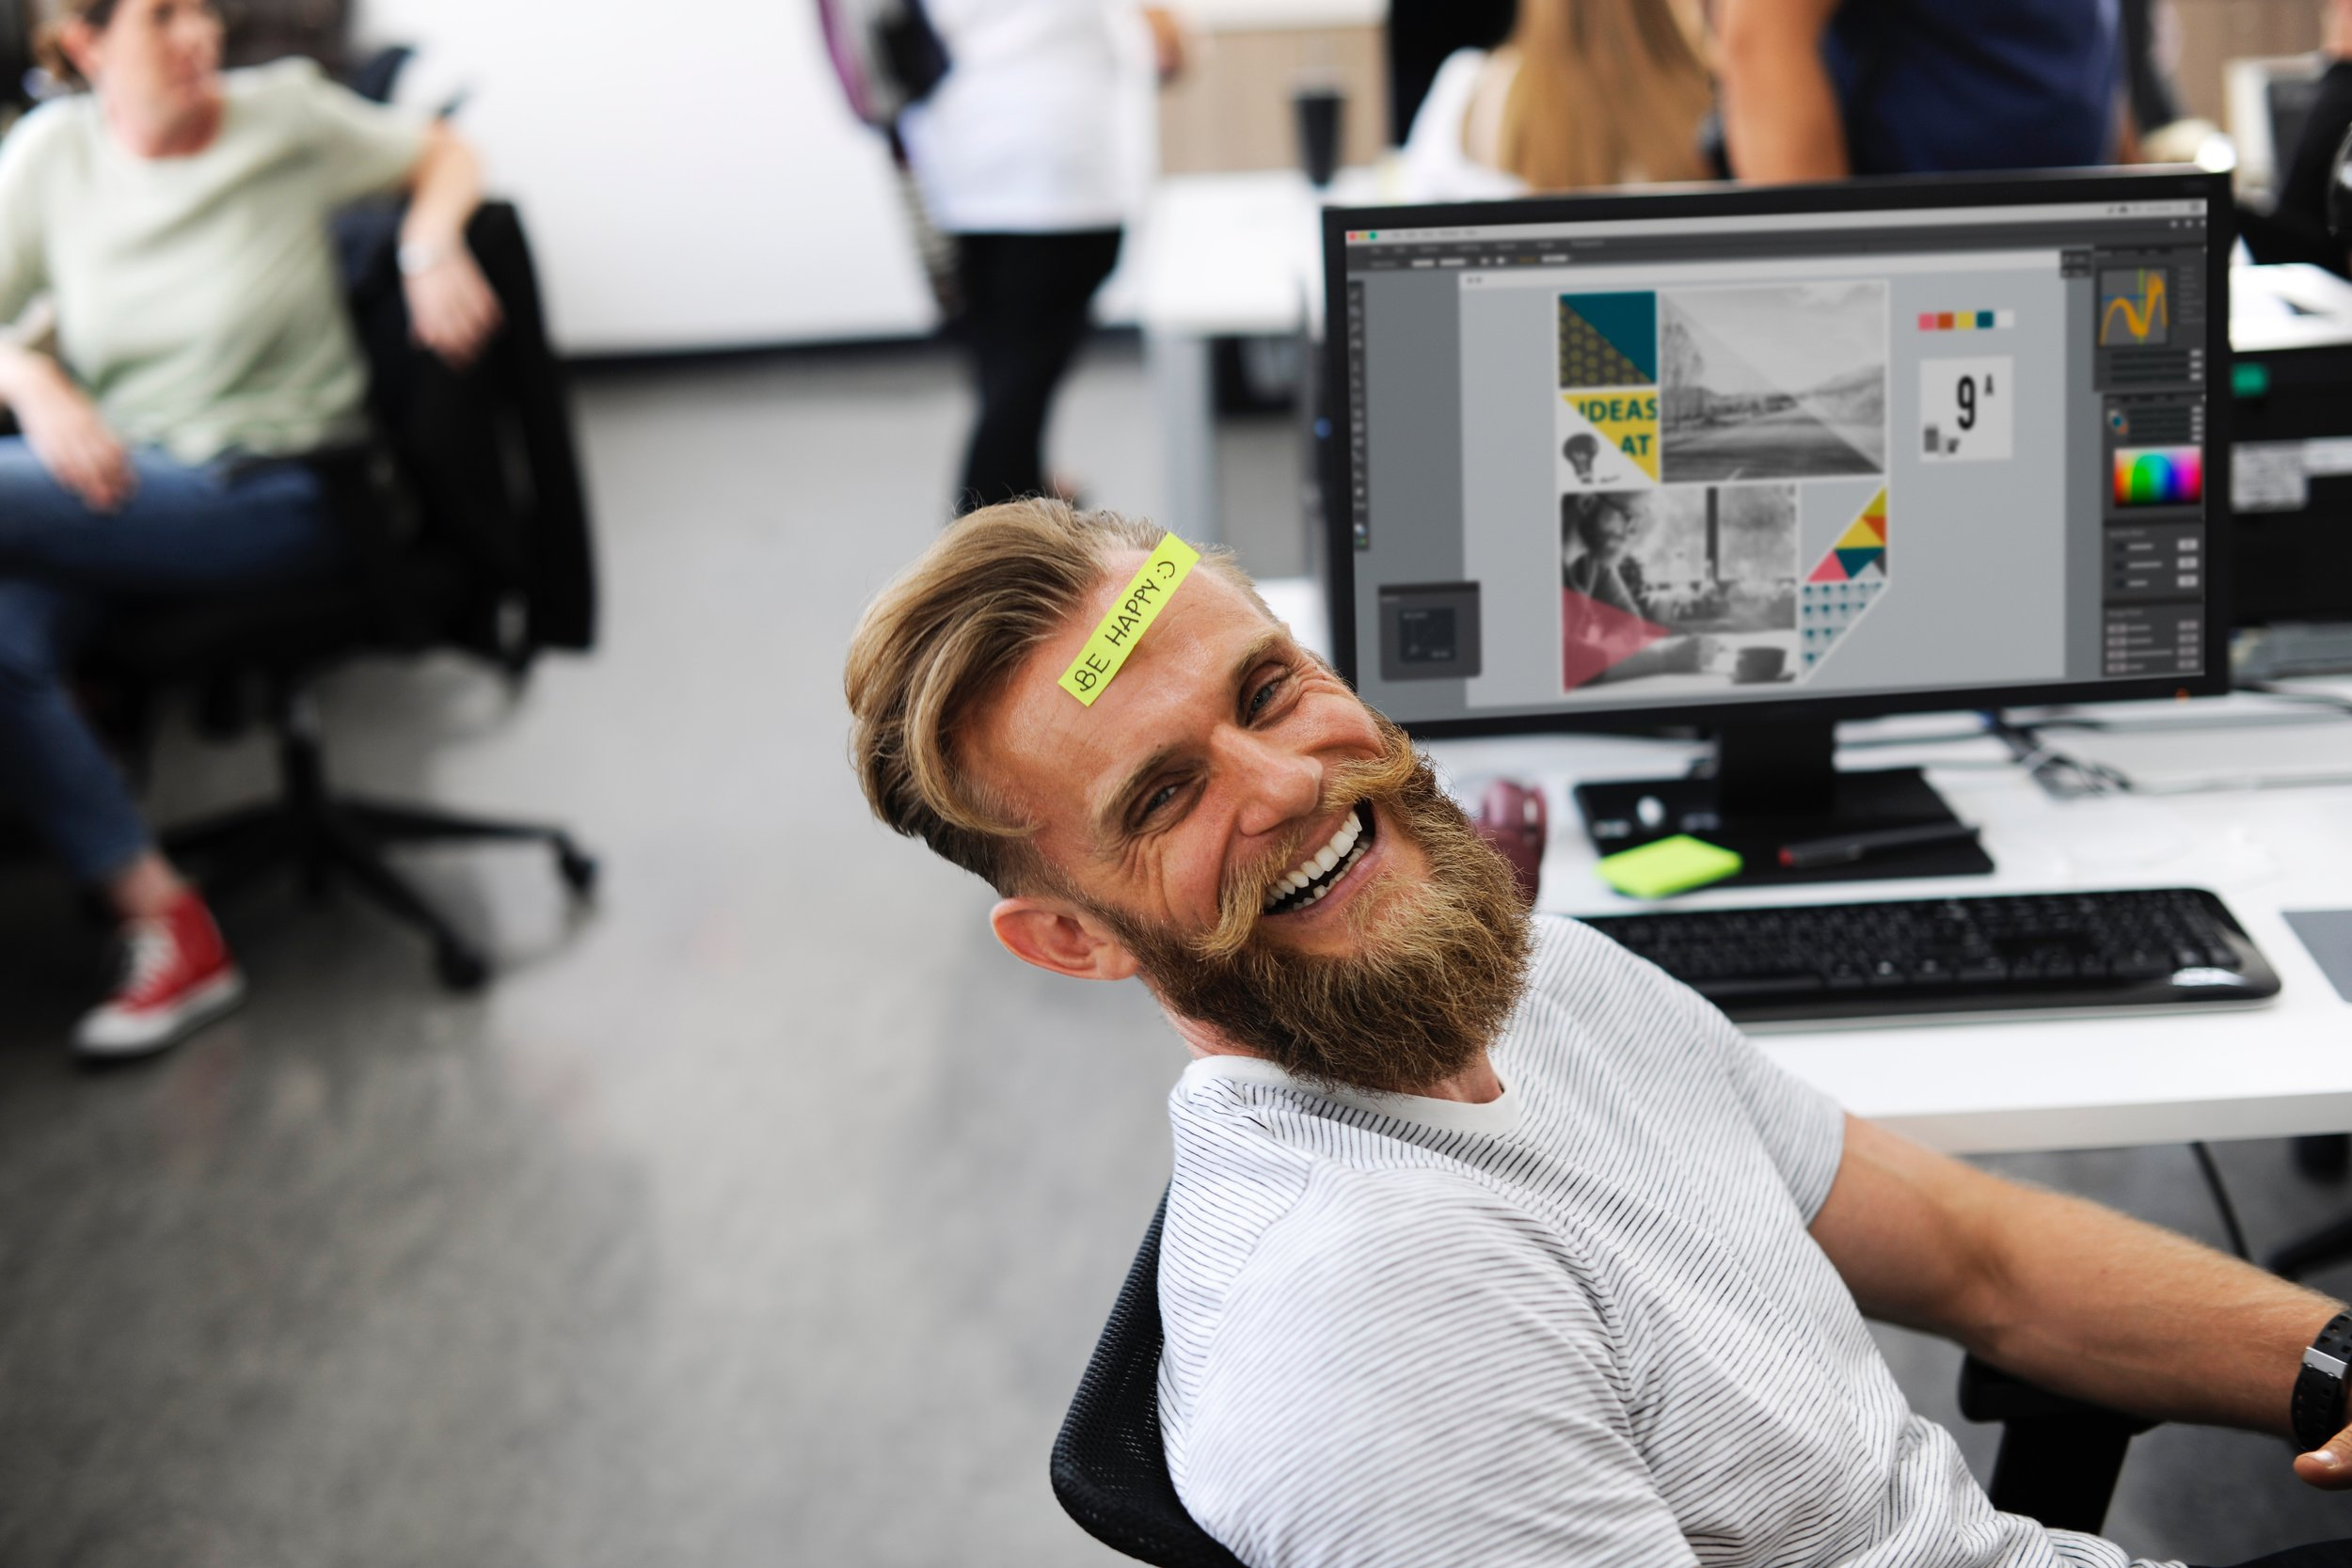 CORPORATE WELLNESS - Think your company could benefit from a healthier, happier workplace? Let us organise a bespoke bootcamp or wellness event, just for you!